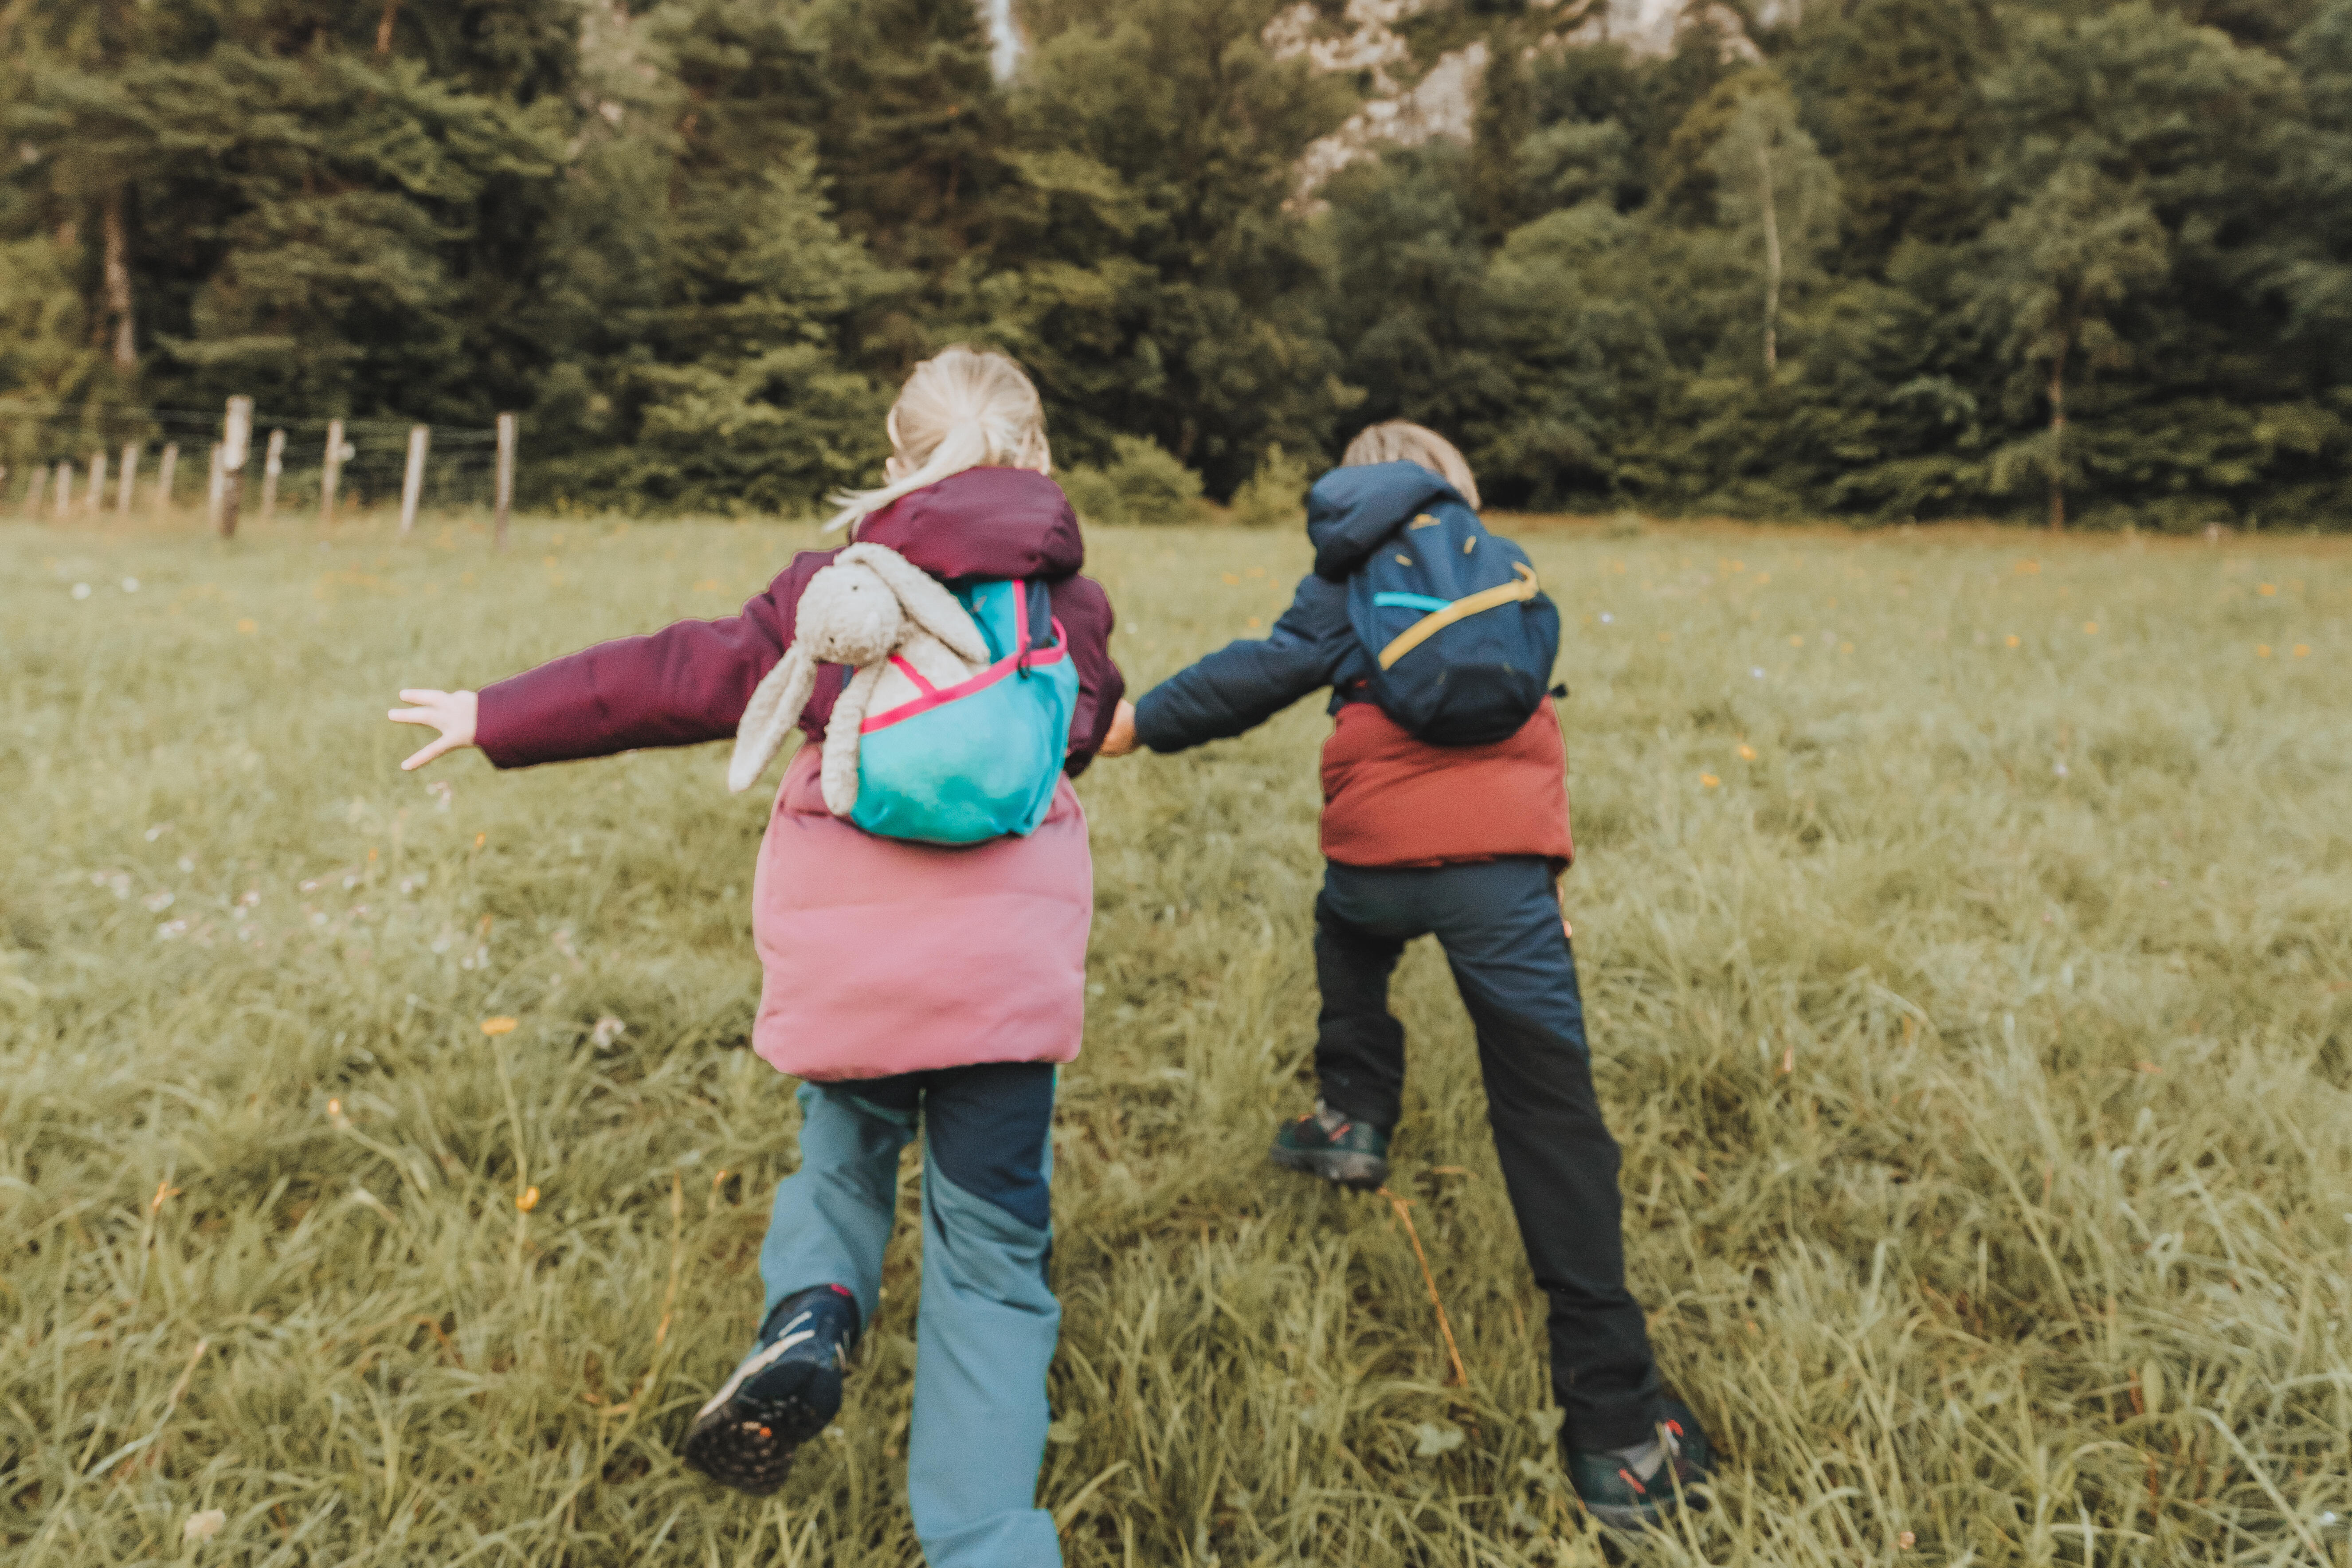 8 ACTIVITIES TO GET YOUR KIDS INTO HIKING